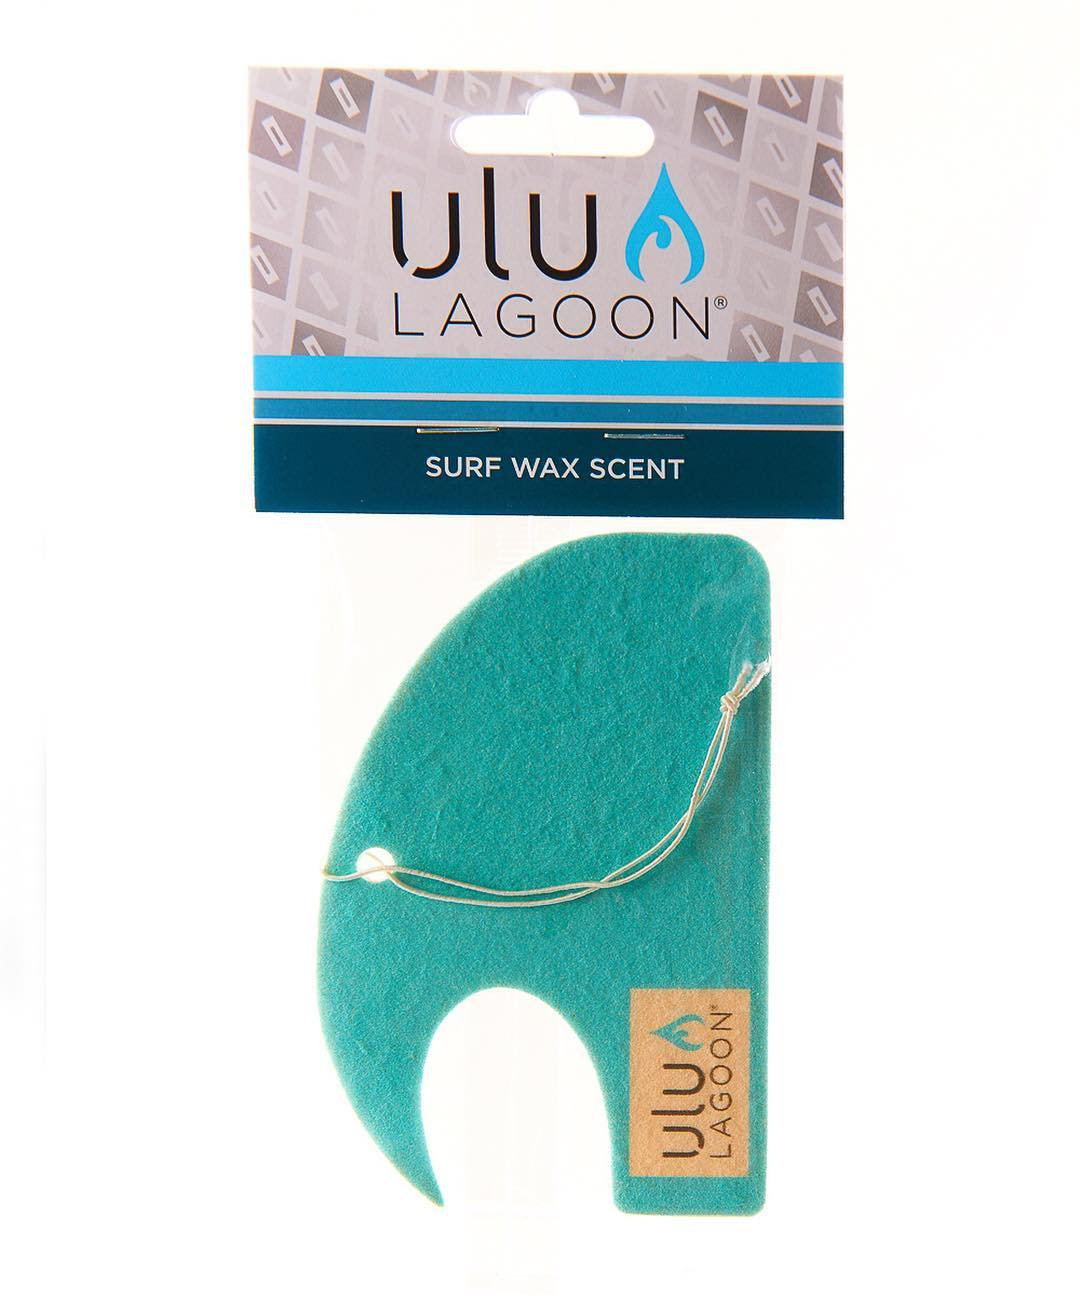 No other color symbolizes the ocean better than blue. So whether you're in the mountains or by the sea, ulu LAGOON's blue surf wax scented mini wave air freshener will appeal to the ocean goer inside of you.